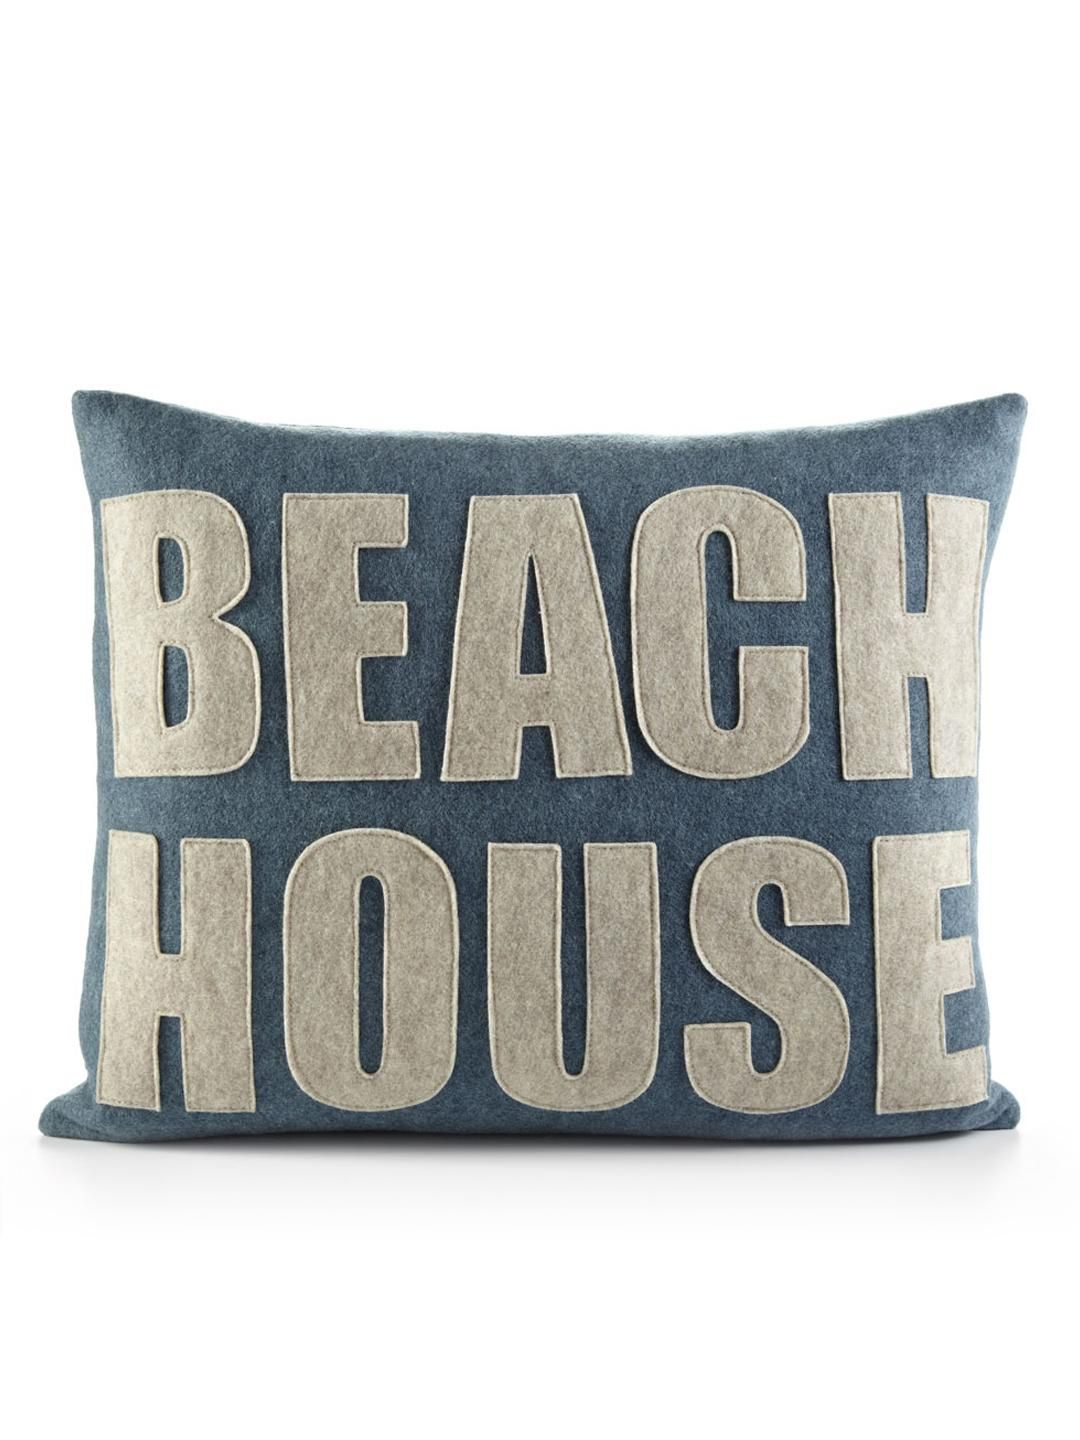 Alexandra Ferguson Beach House 14x18 Pillow Vault For The Boat Beach House Pillow Beach House Decor Beach House